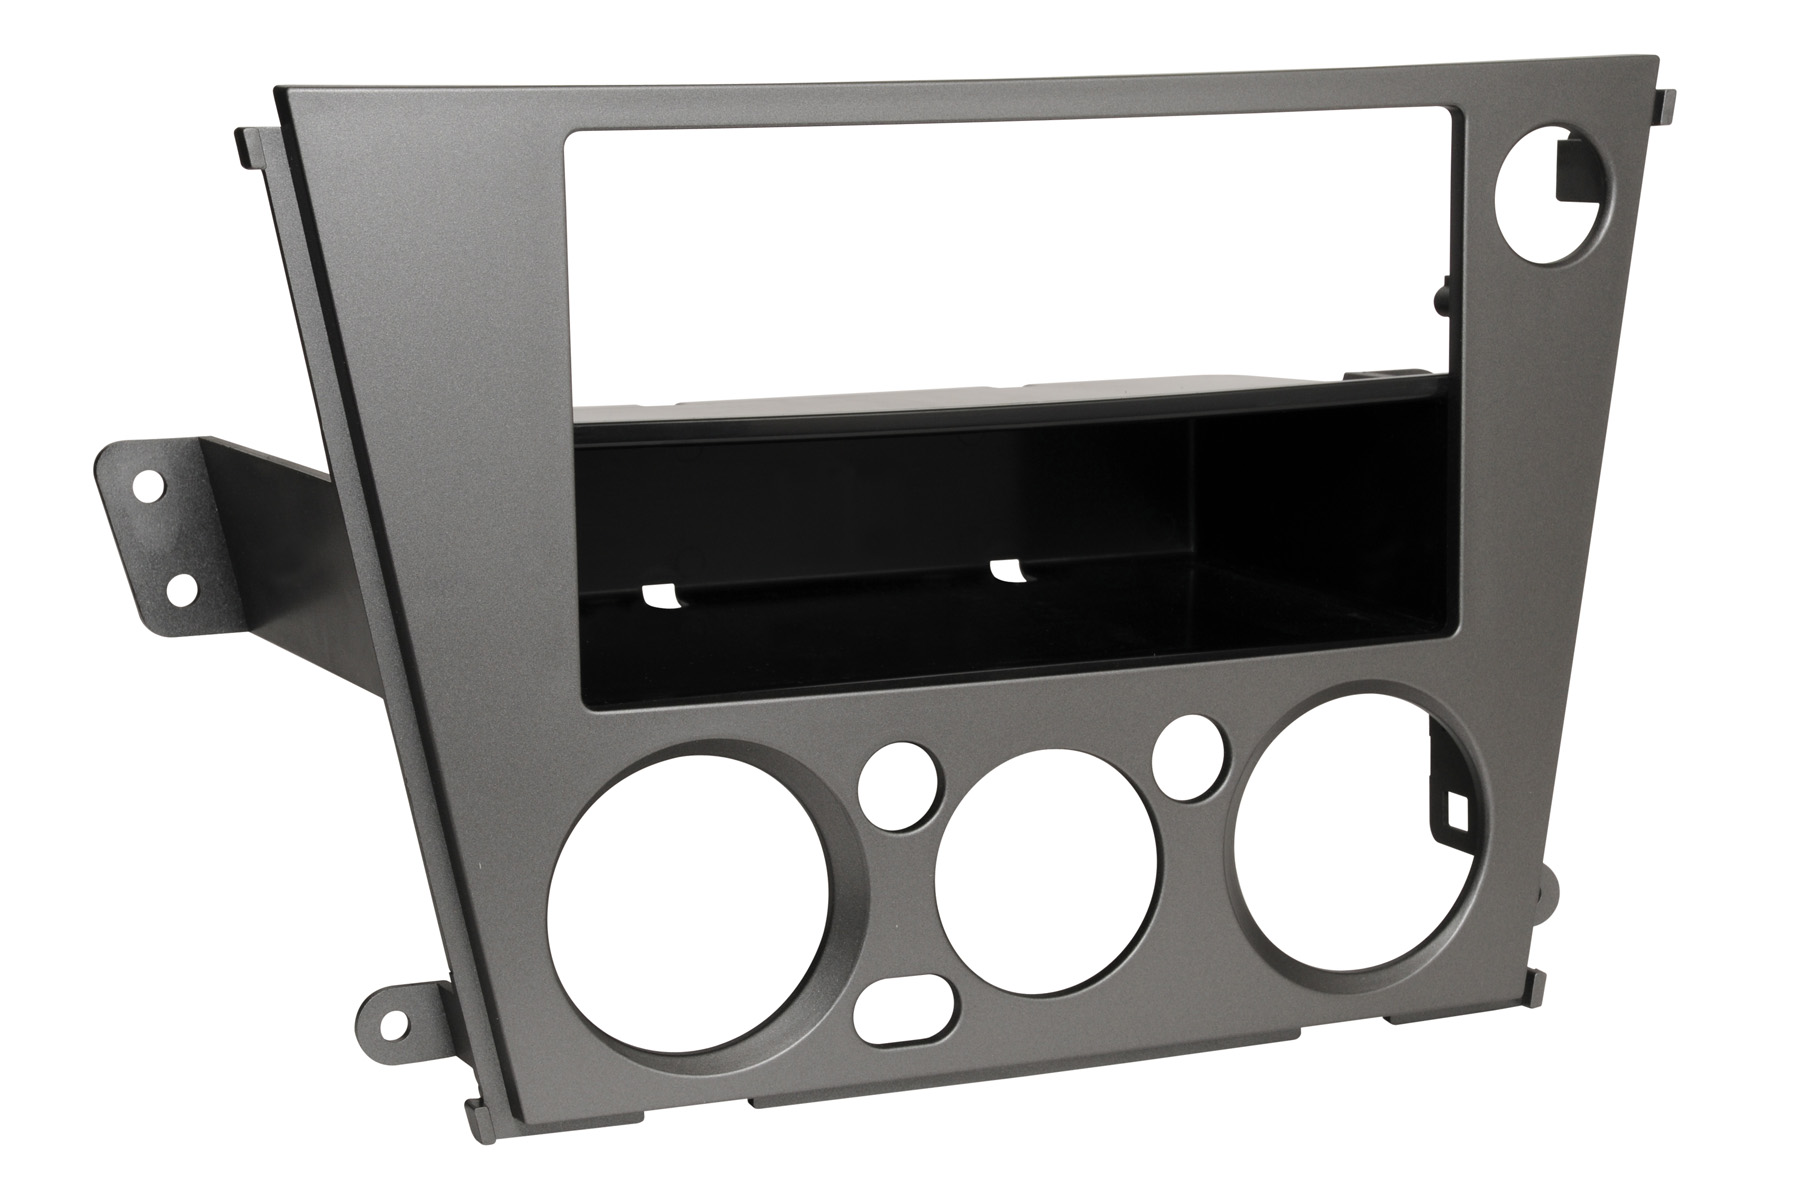 sony car radio stereo cd player dash install mounting kit